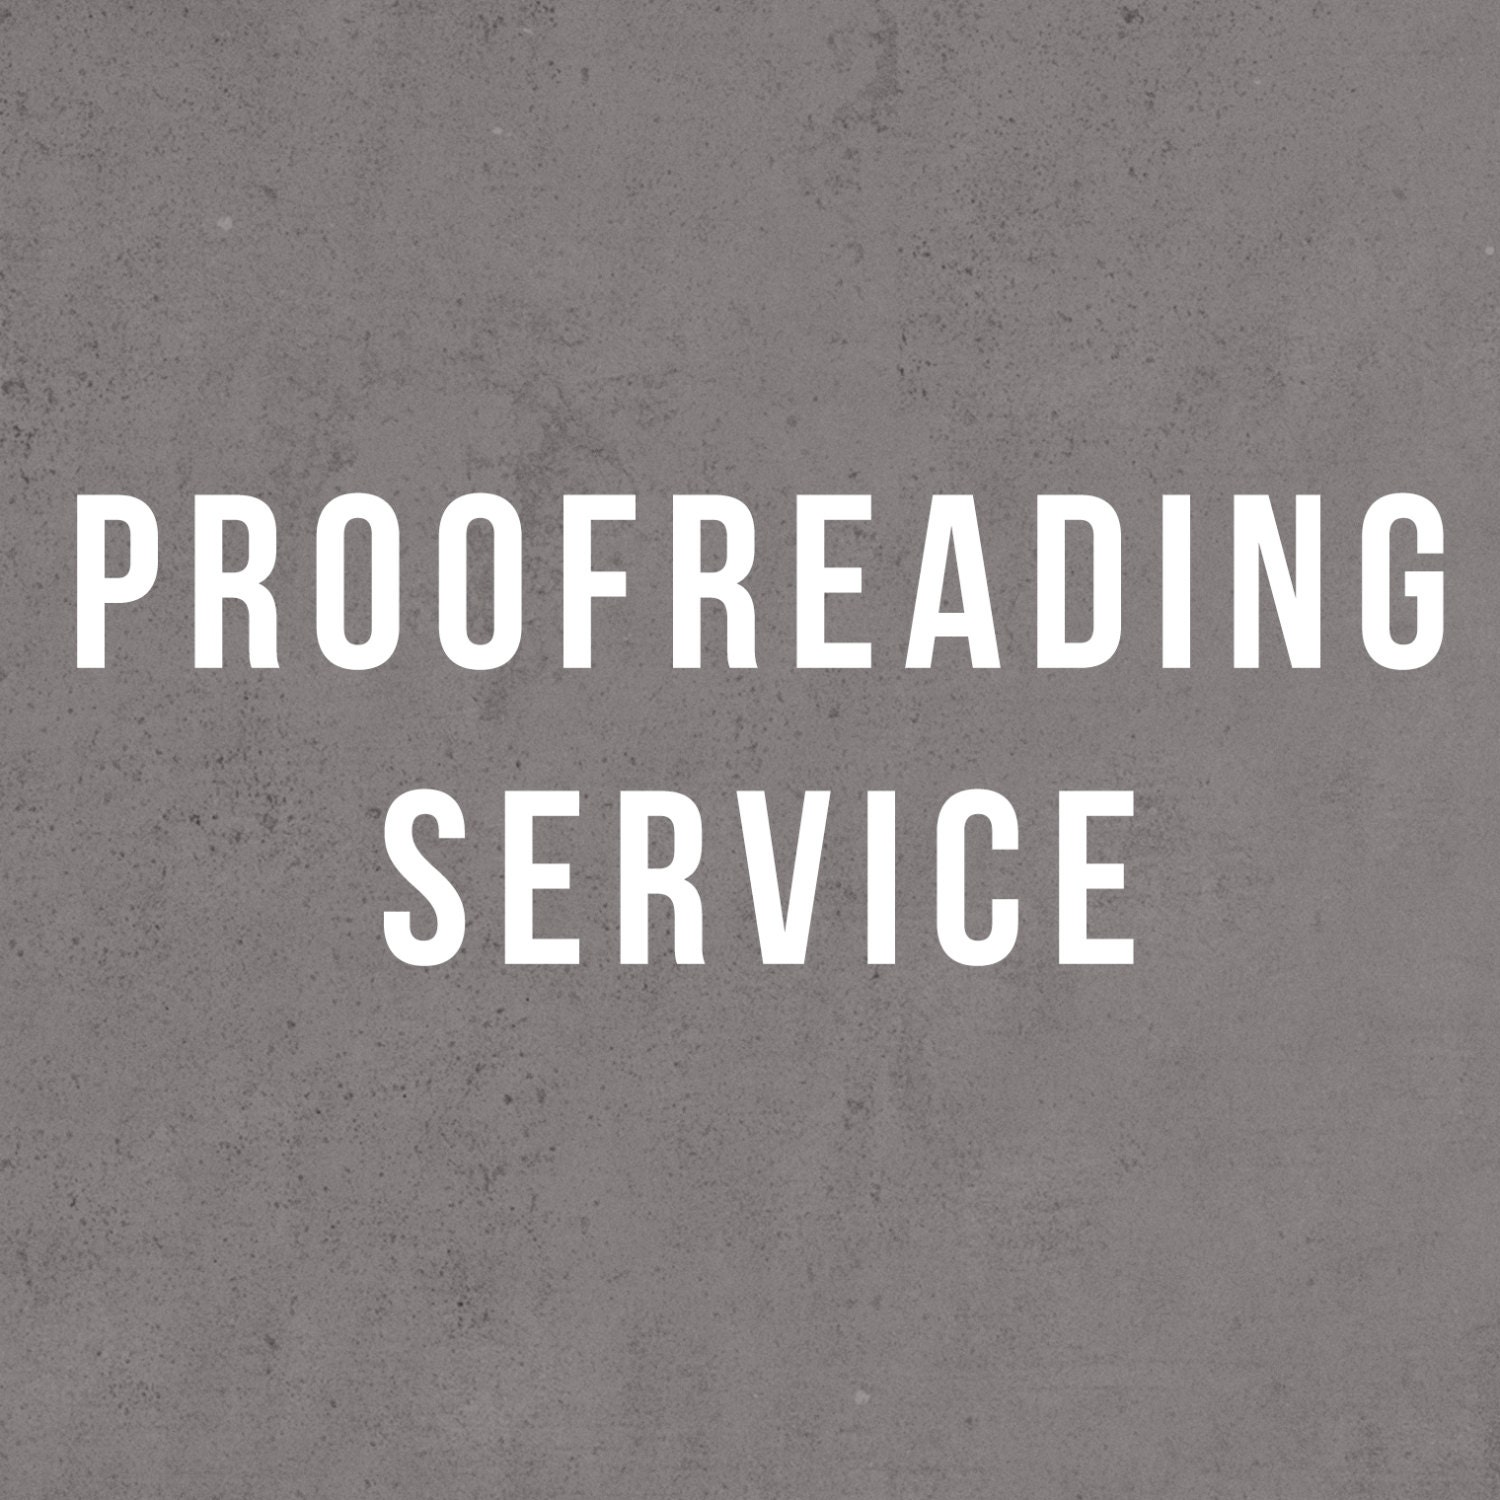 Proofreading service